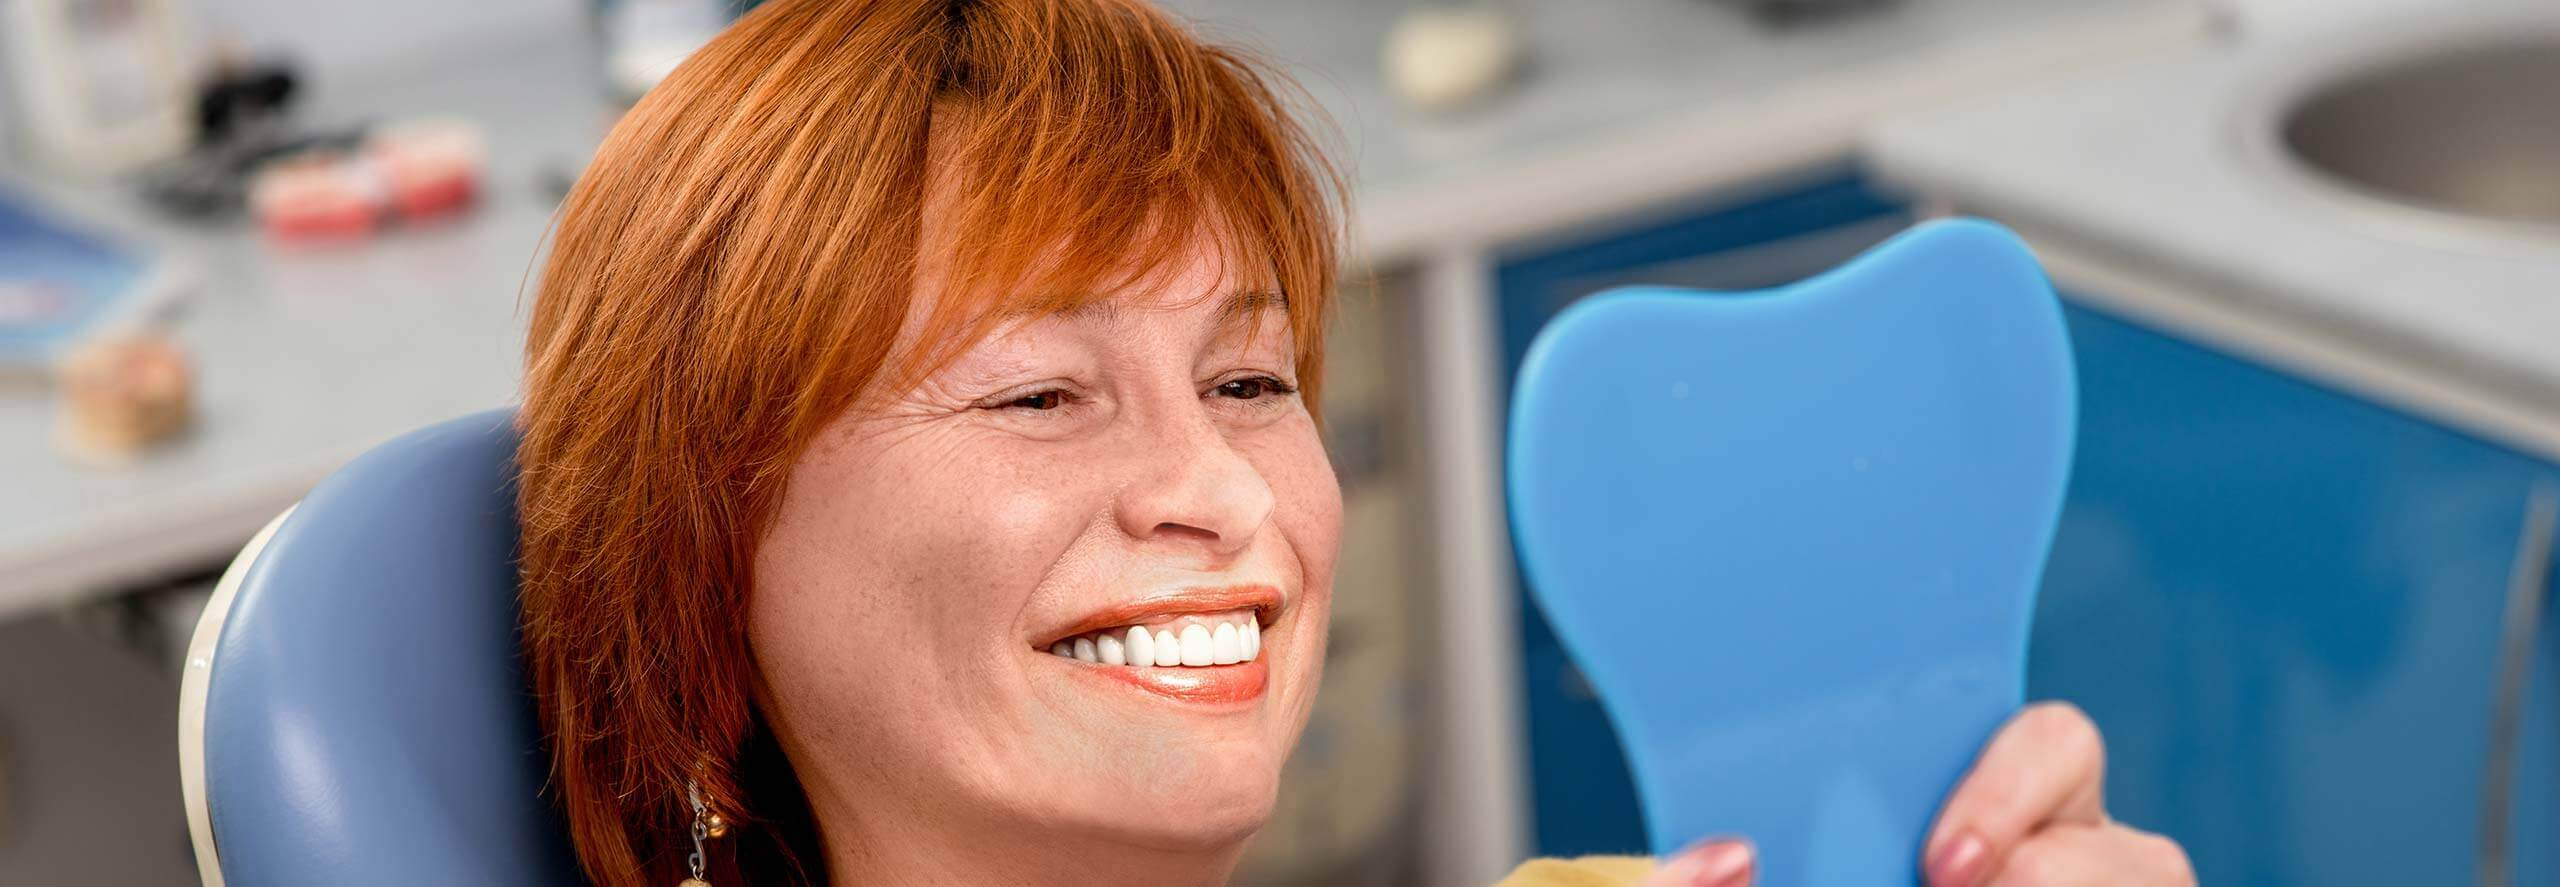 woman examining her smile in a mirror